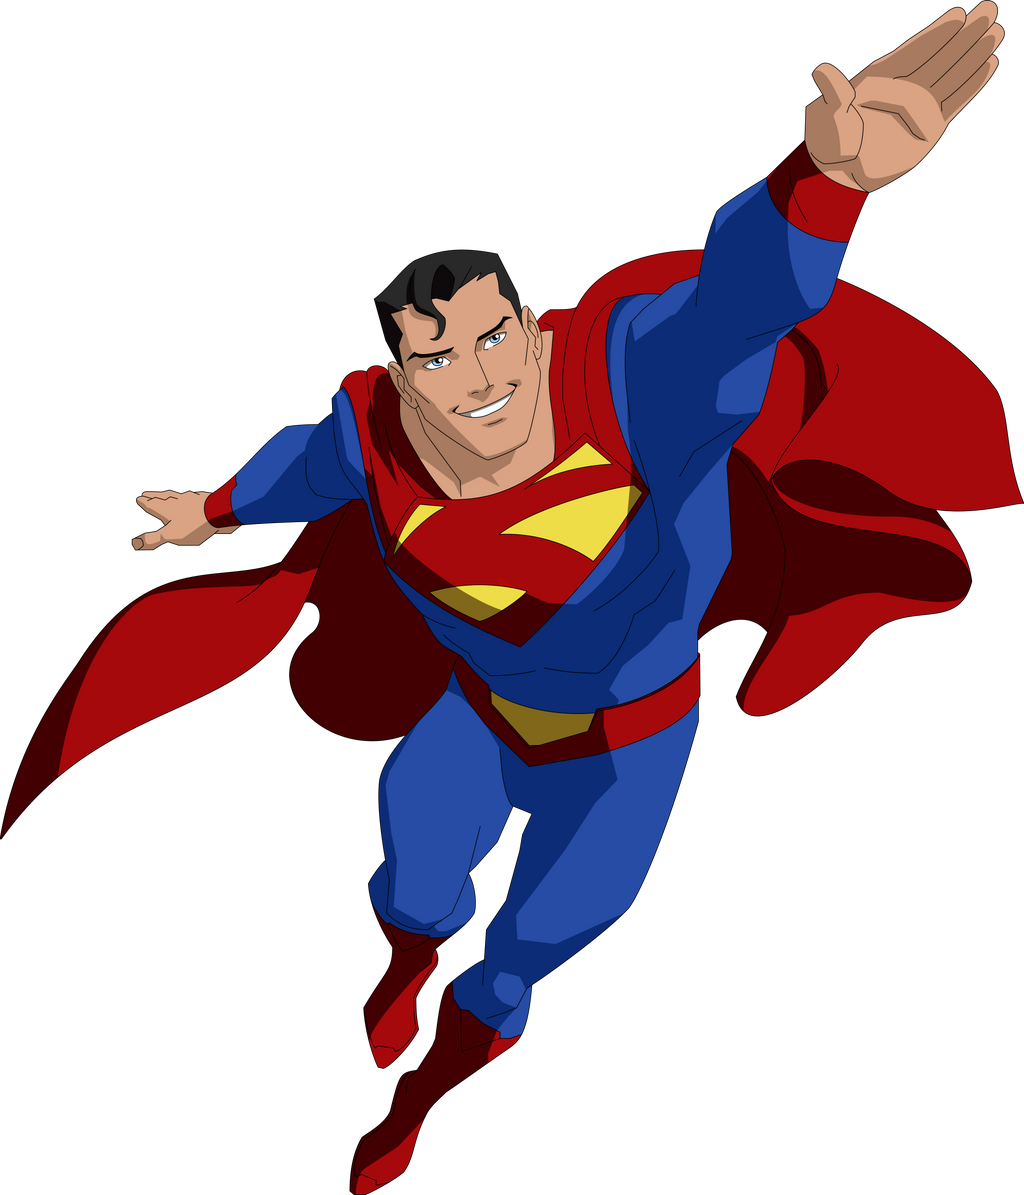 [Jeu] Association d'images - Page 20 Earth_2_superman__bourassa_style__by_owc478-d74ivzp